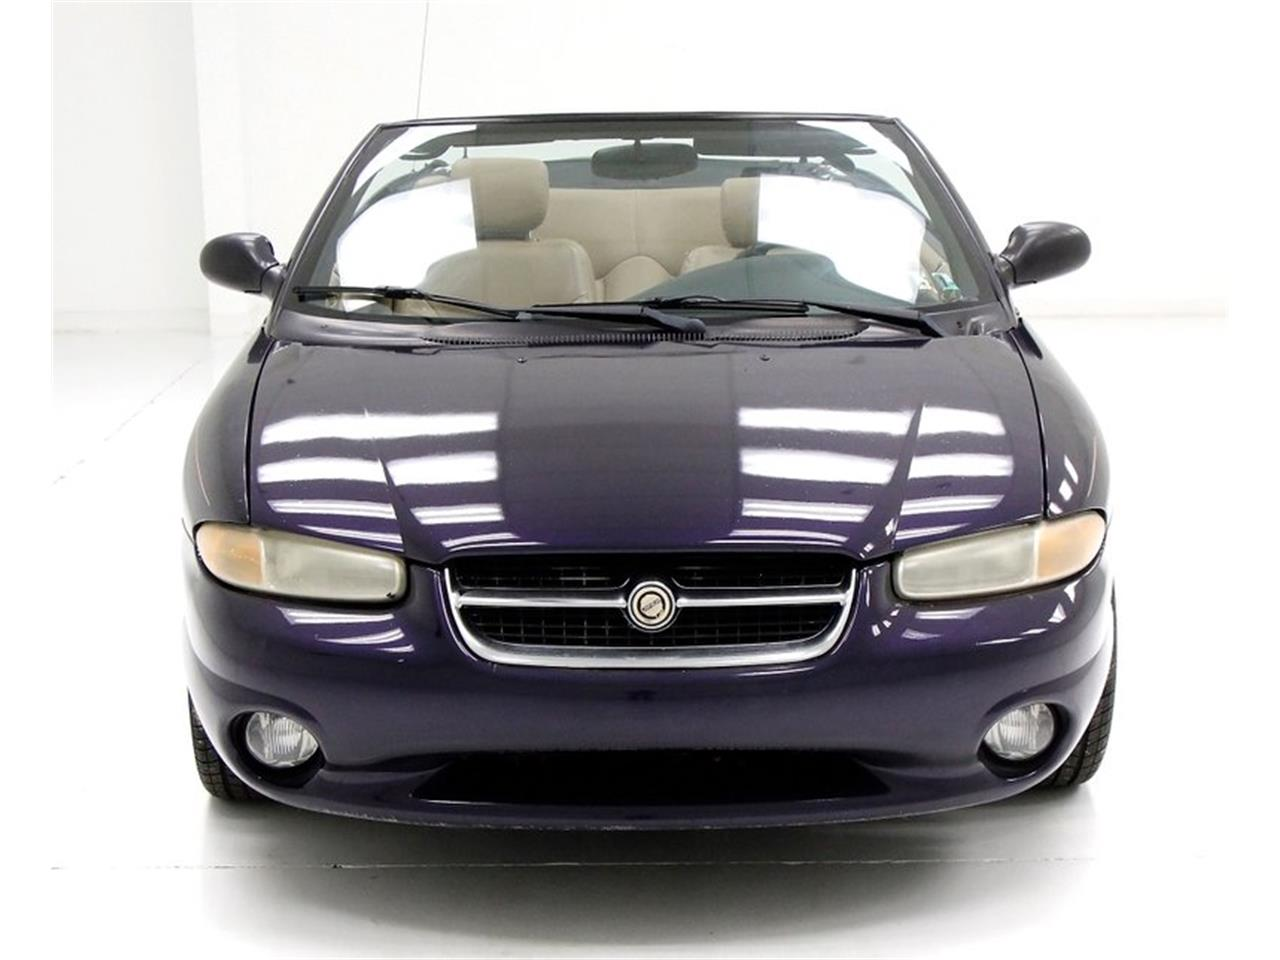 Large Picture of '97 Chrysler Sebring located in Morgantown Pennsylvania - $7,995.00 Offered by Classic Auto Mall - LVUB